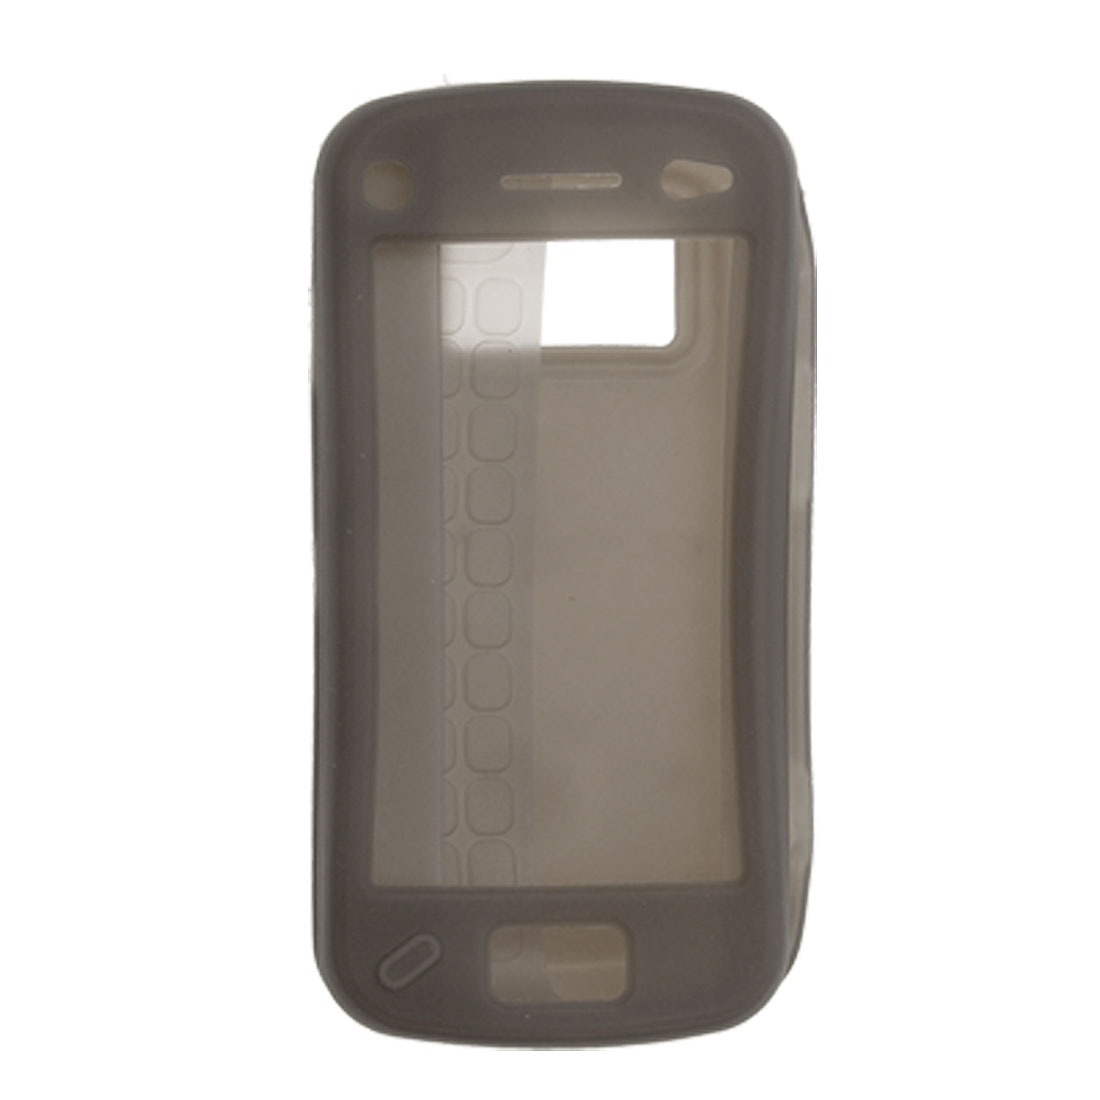 Gray Silicone Skin Shell Case Cover for Nokia N97